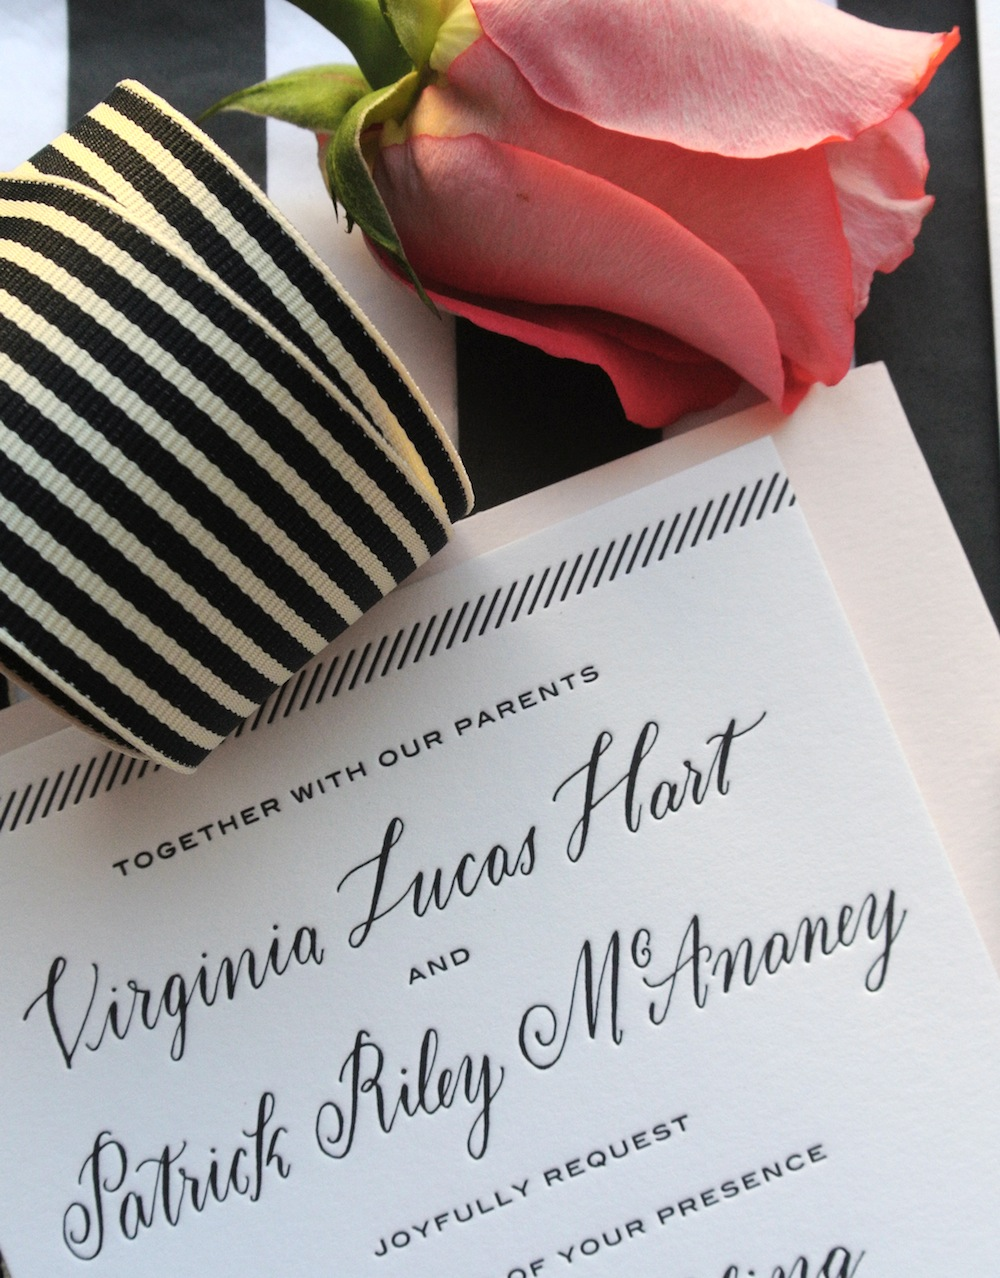 wedding invitation suite by Virginia Lucas Hart - photo 5